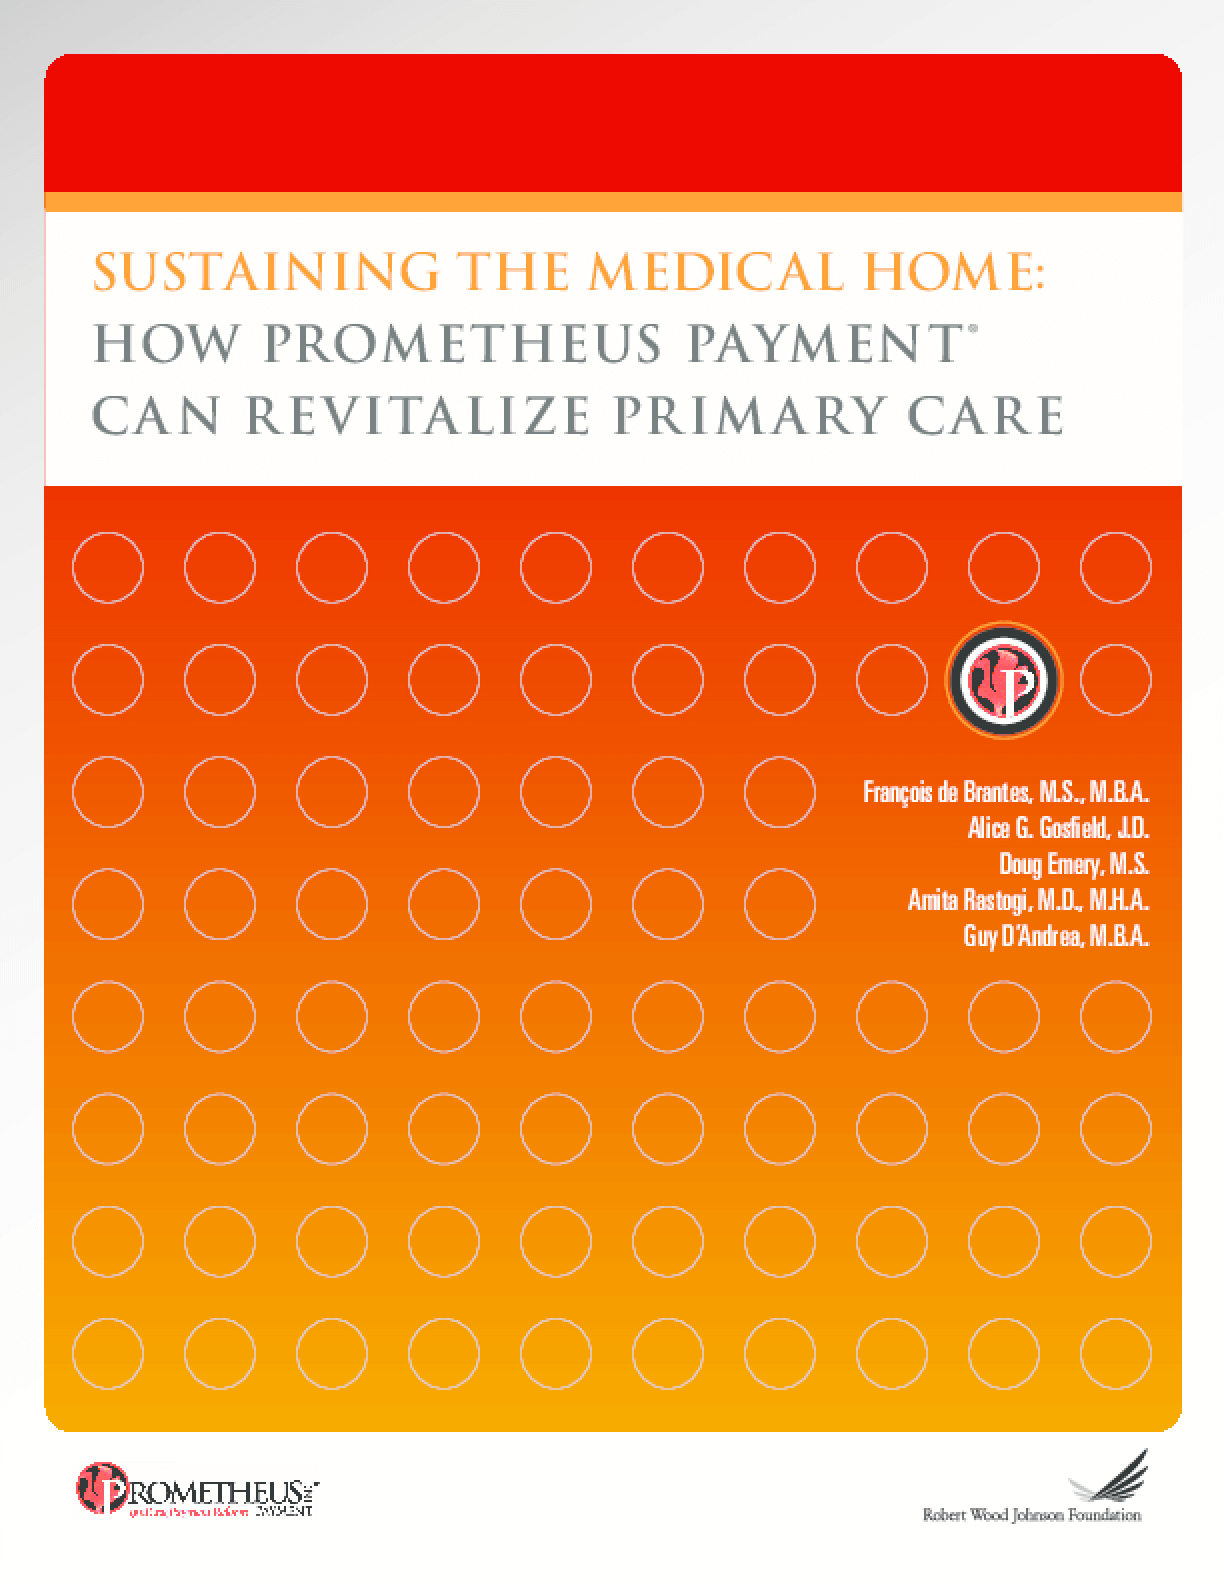 Sustaining the Medical Home: How PROMETHEUS Payment Can Revitalize Primary Care